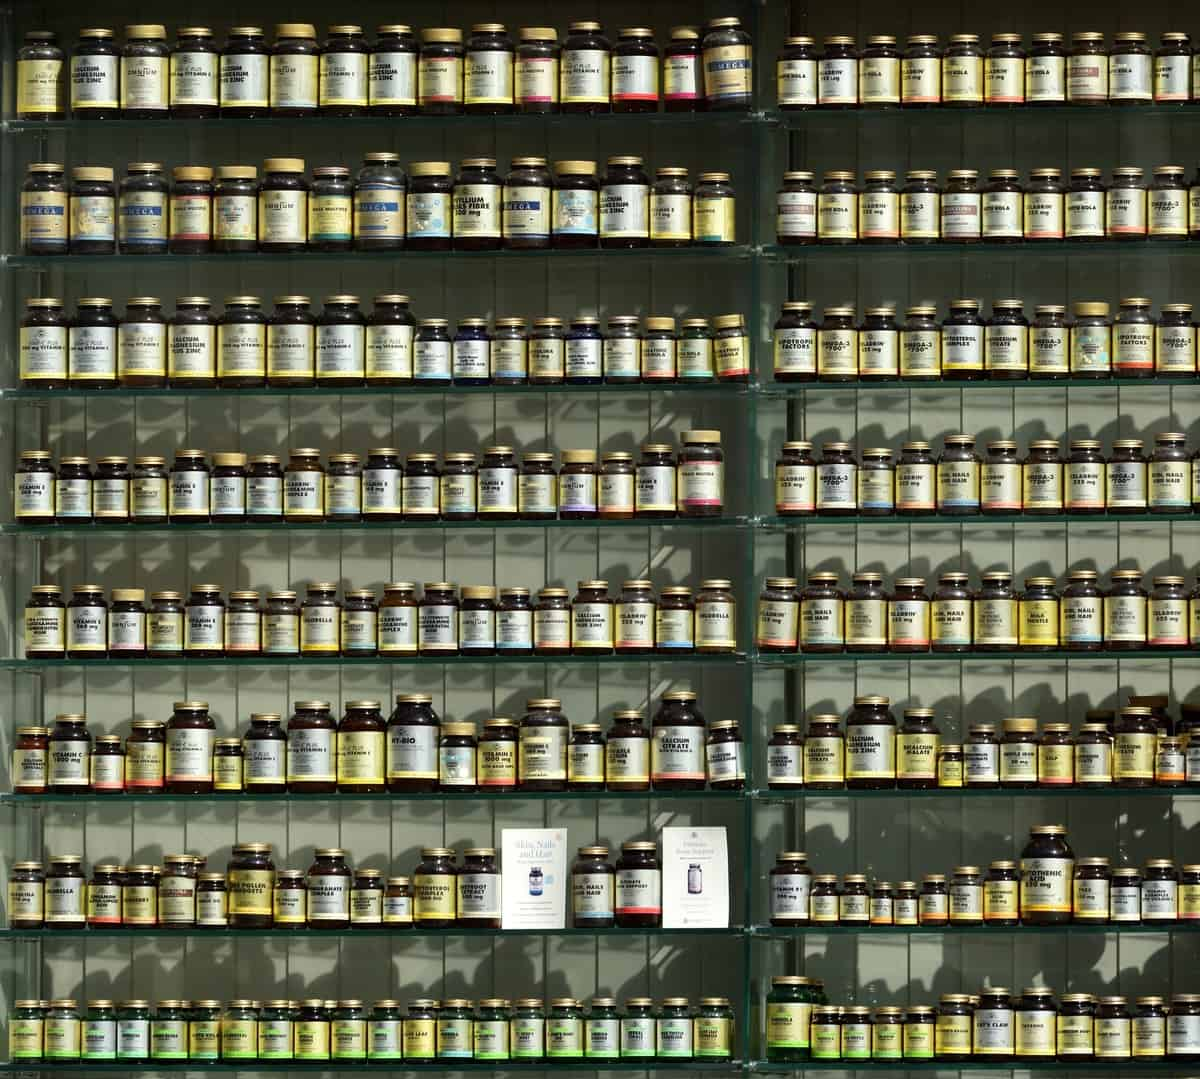 A wall of arbonne supplements.